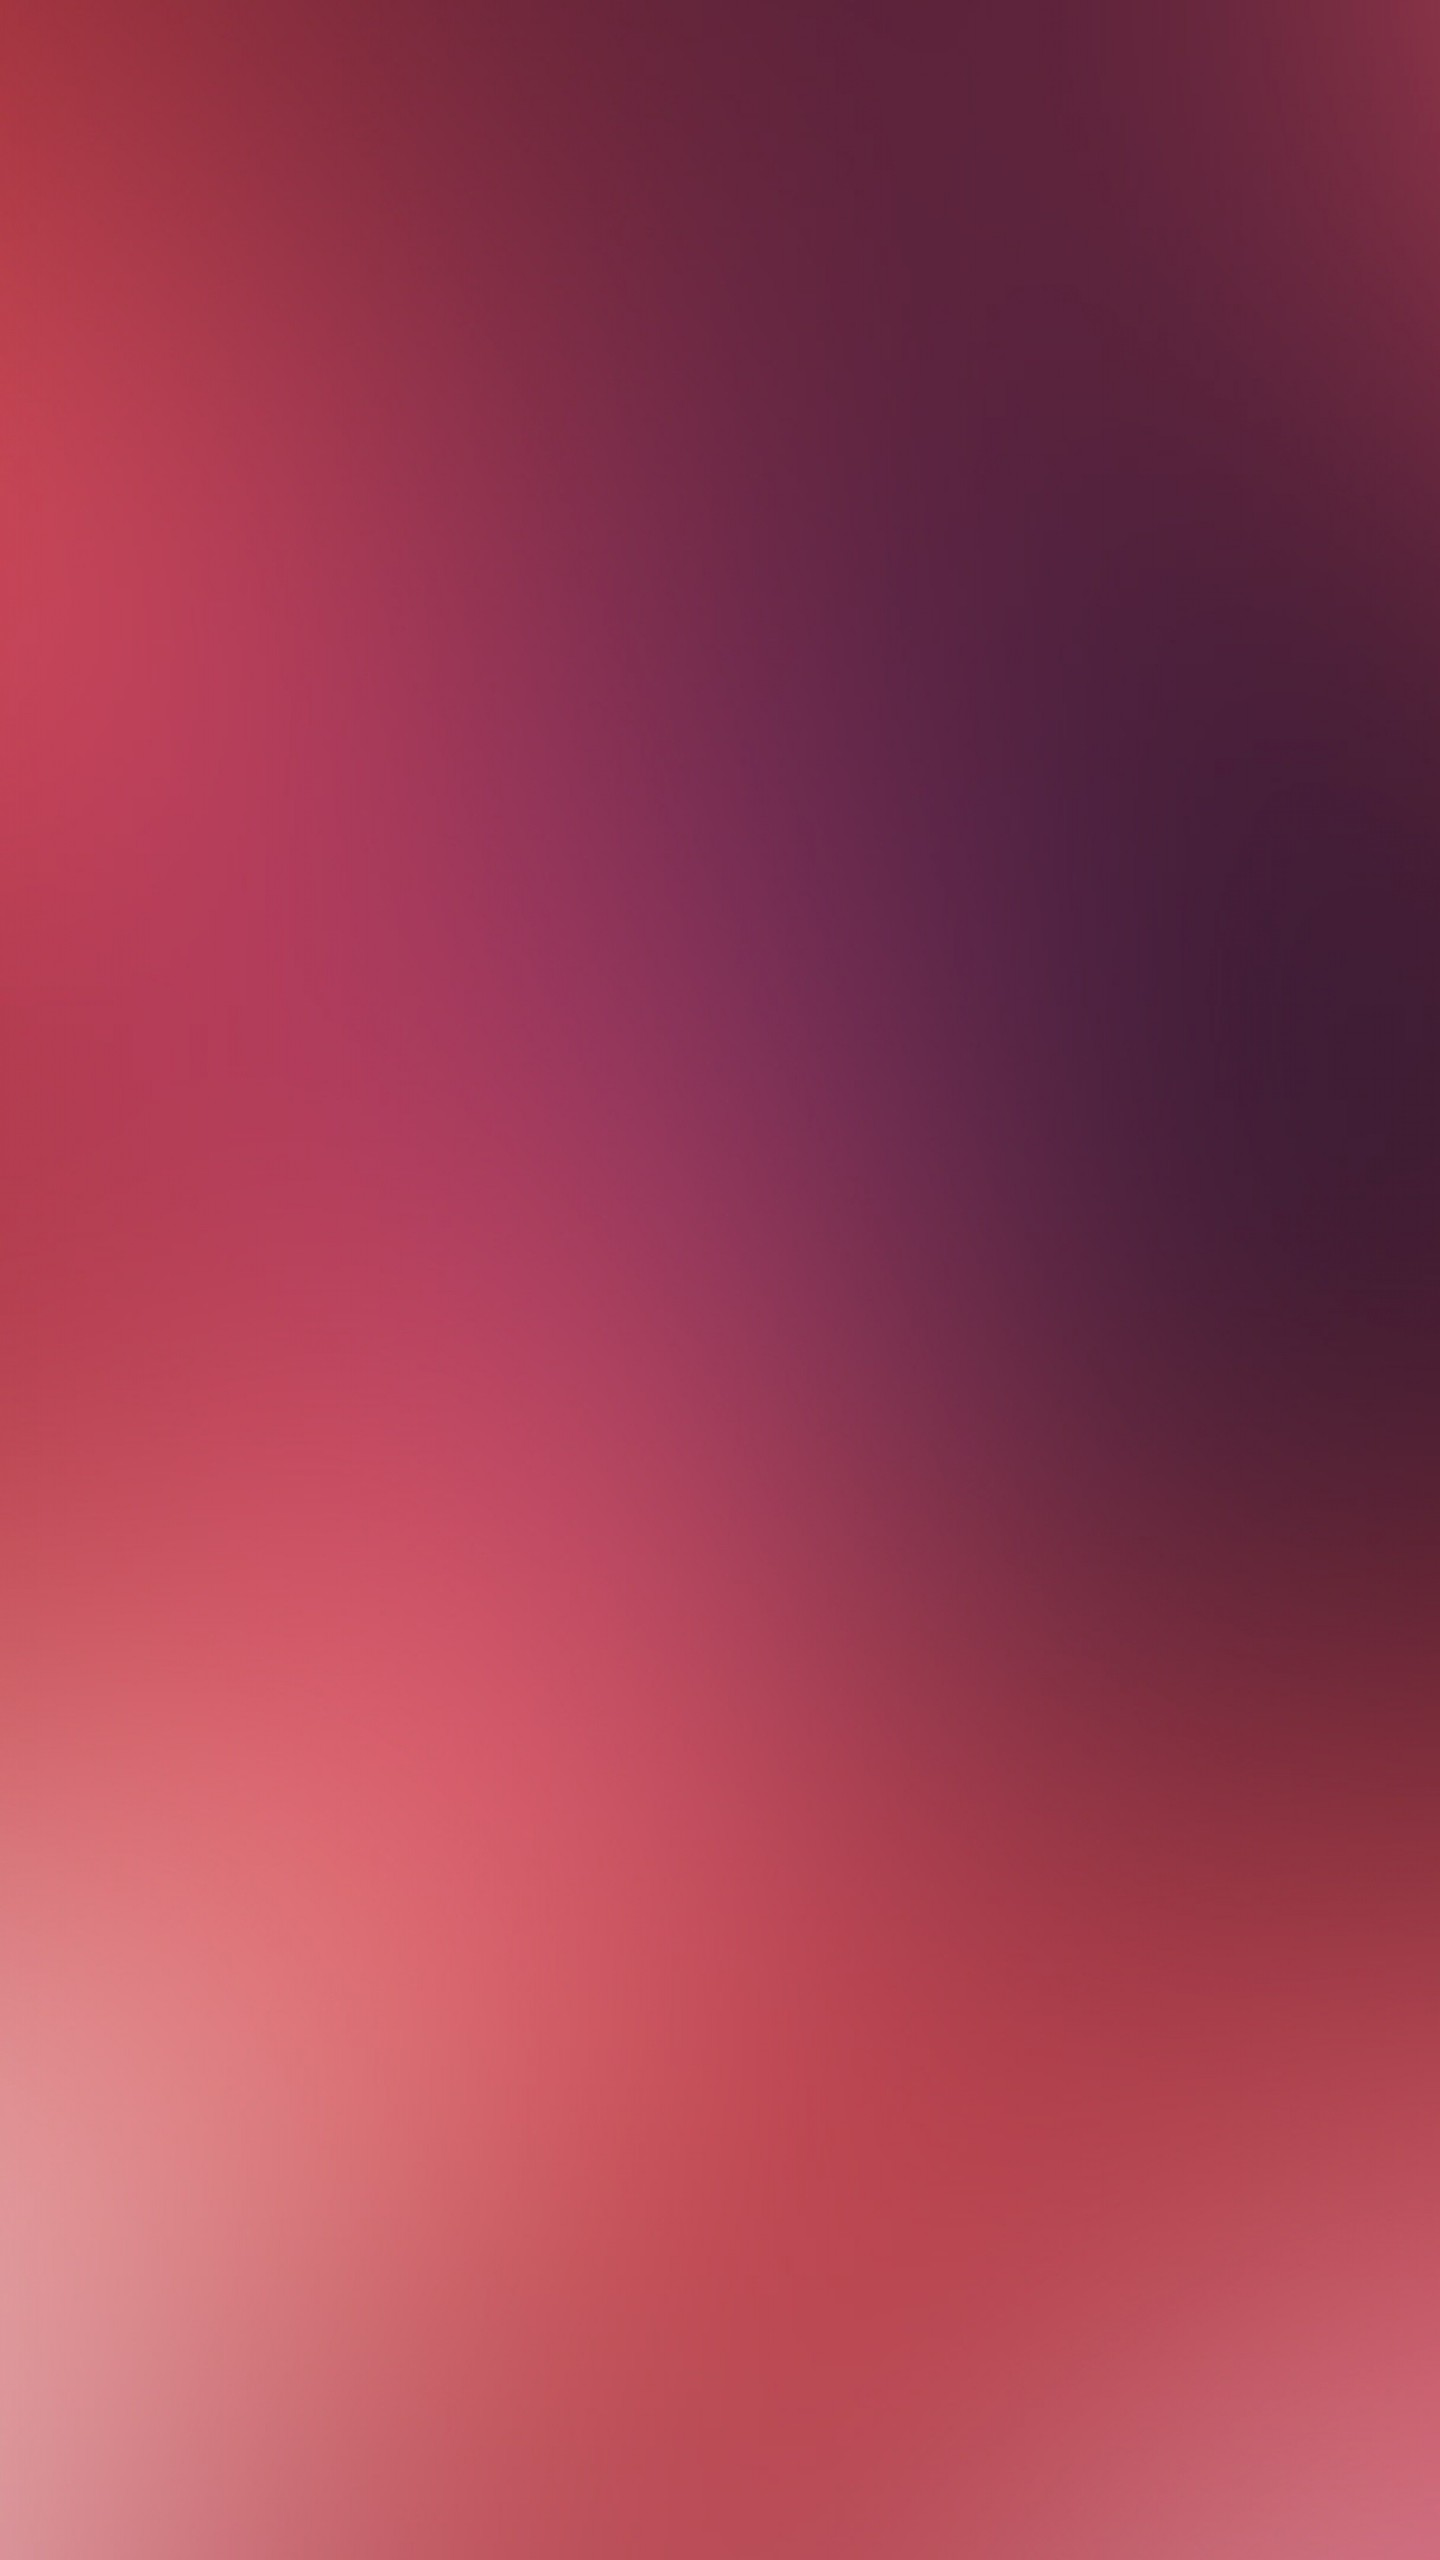 Wallpaper spots, red, pink, abstract